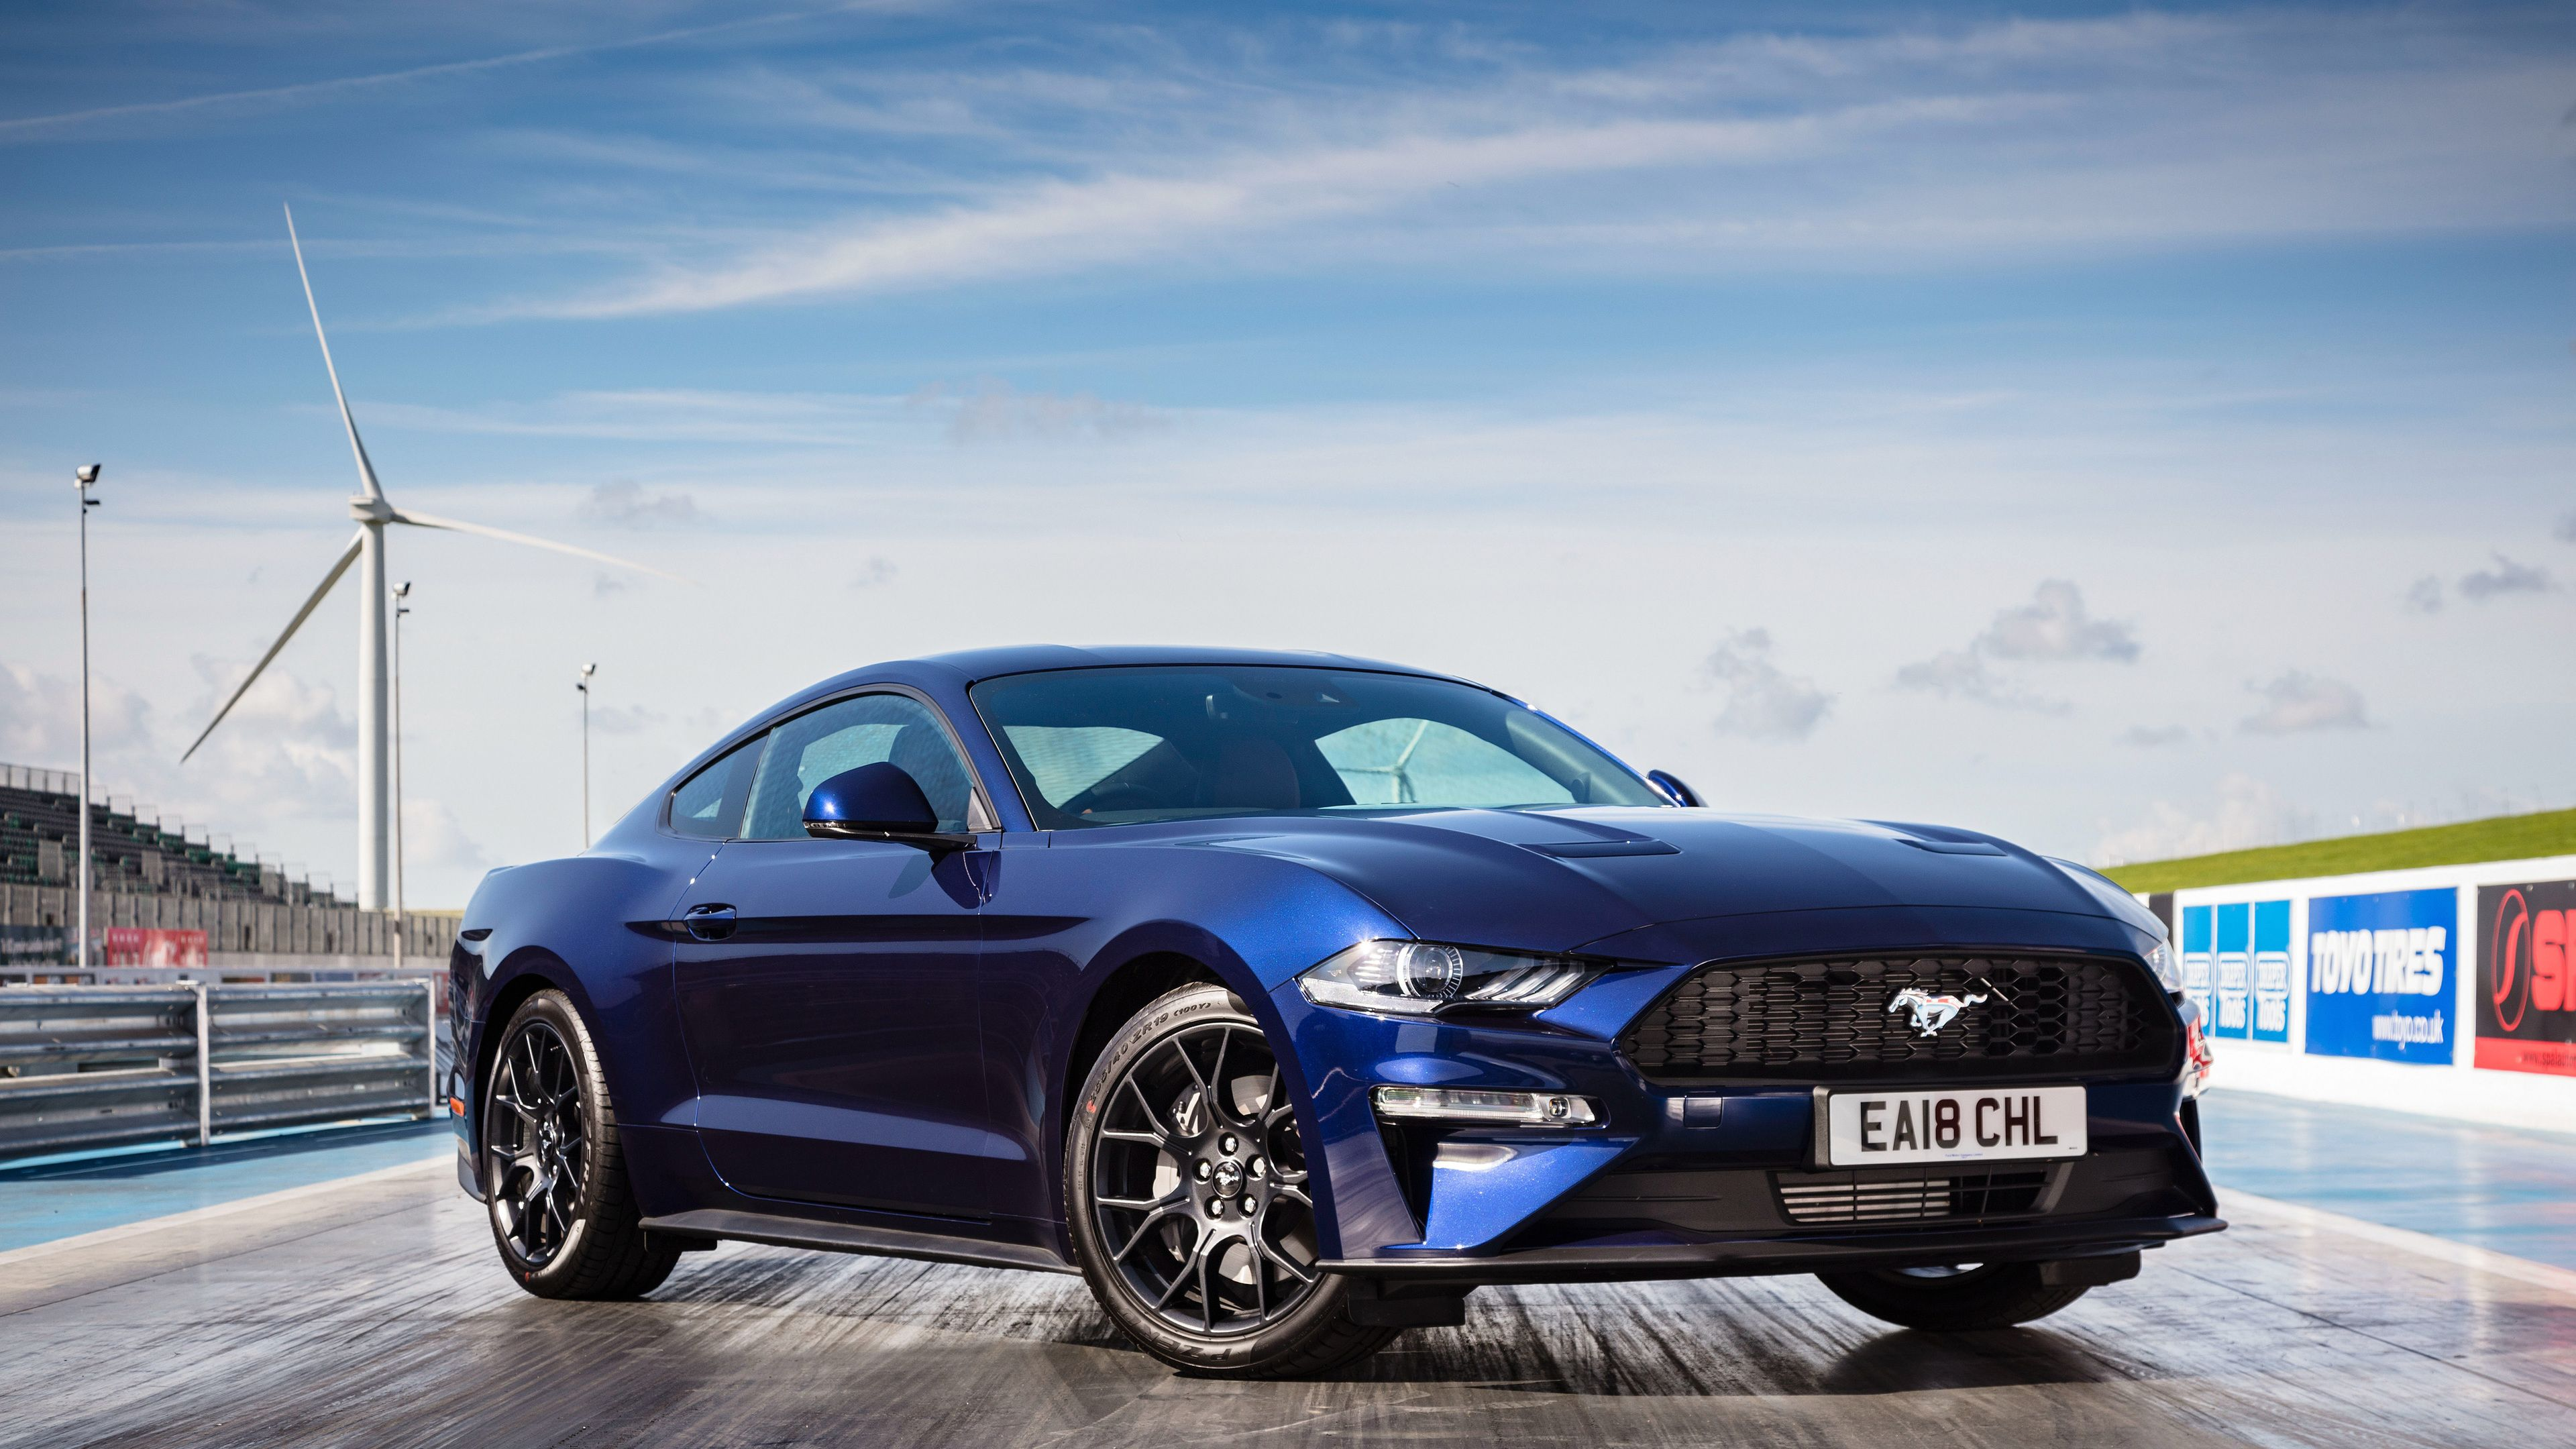 Ford Mustang Ecoboost Fastback 2018 Mustang Wallpapers Hd Wallpapers Ford Mustang Wallpapers Cars Wallpapers 4k Mustang Ecoboost Blue Mustang Ford Mustang